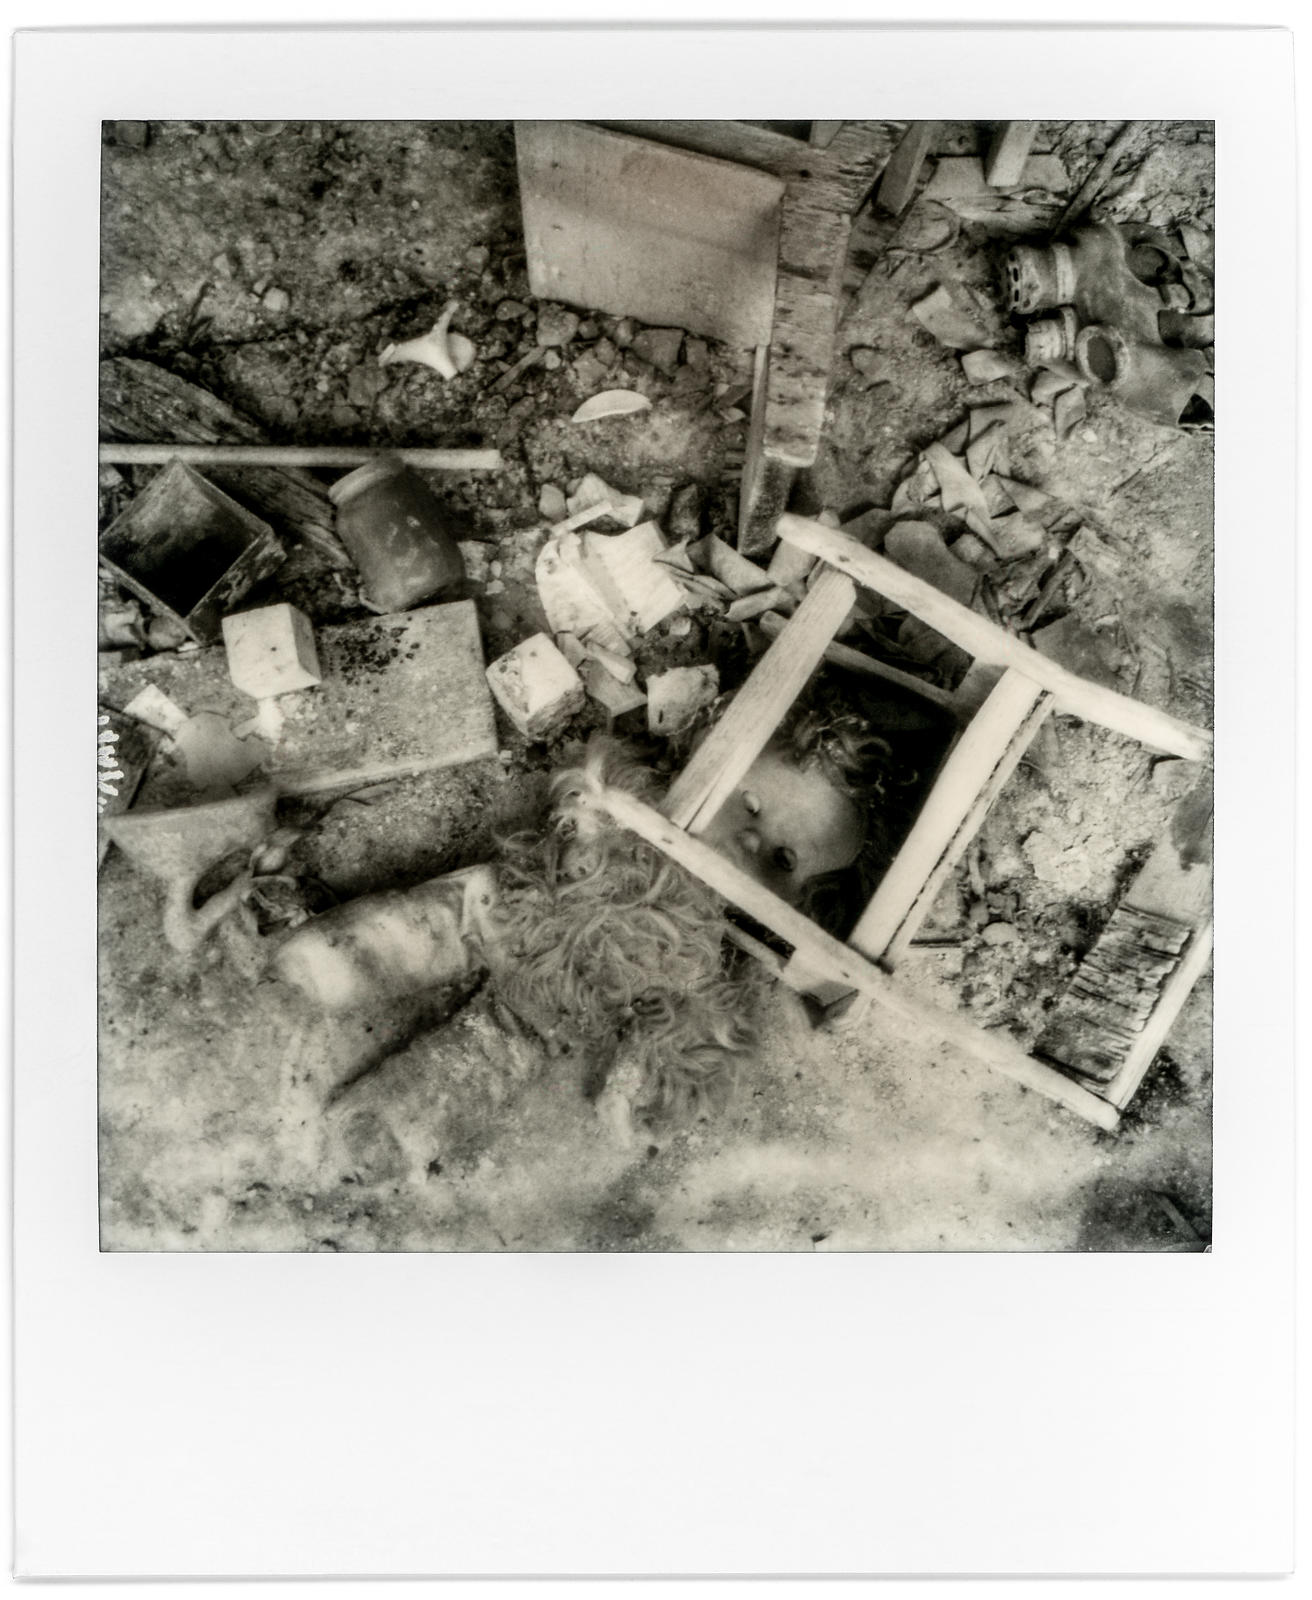 photo-polaroid-tchernobyl-chernobyl-3643